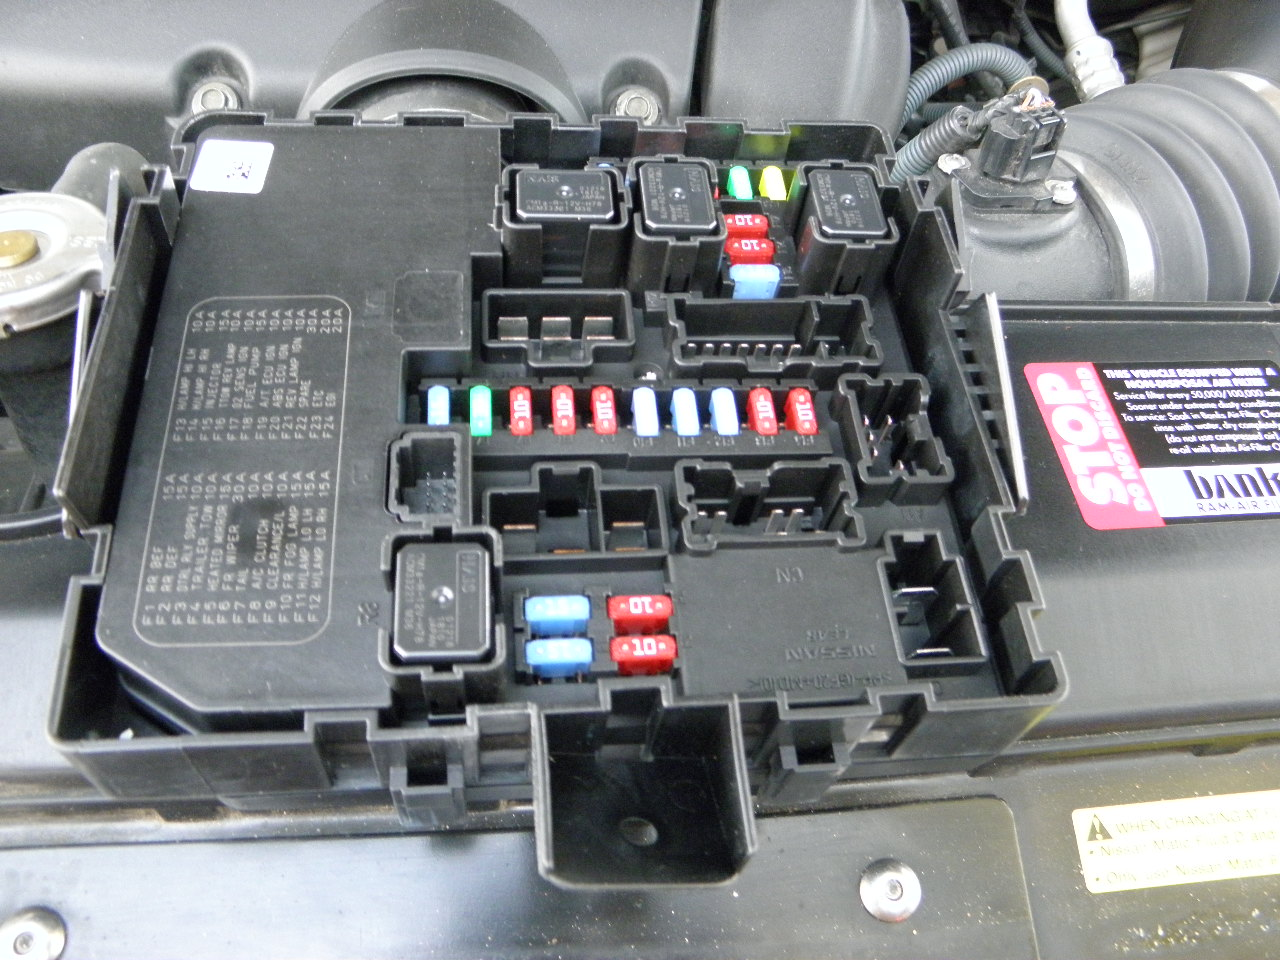 hight resolution of nissan xterra fuse box diagram wiring libraryecm relay 2008 nissan titan wiring source 2002 xterra fuse